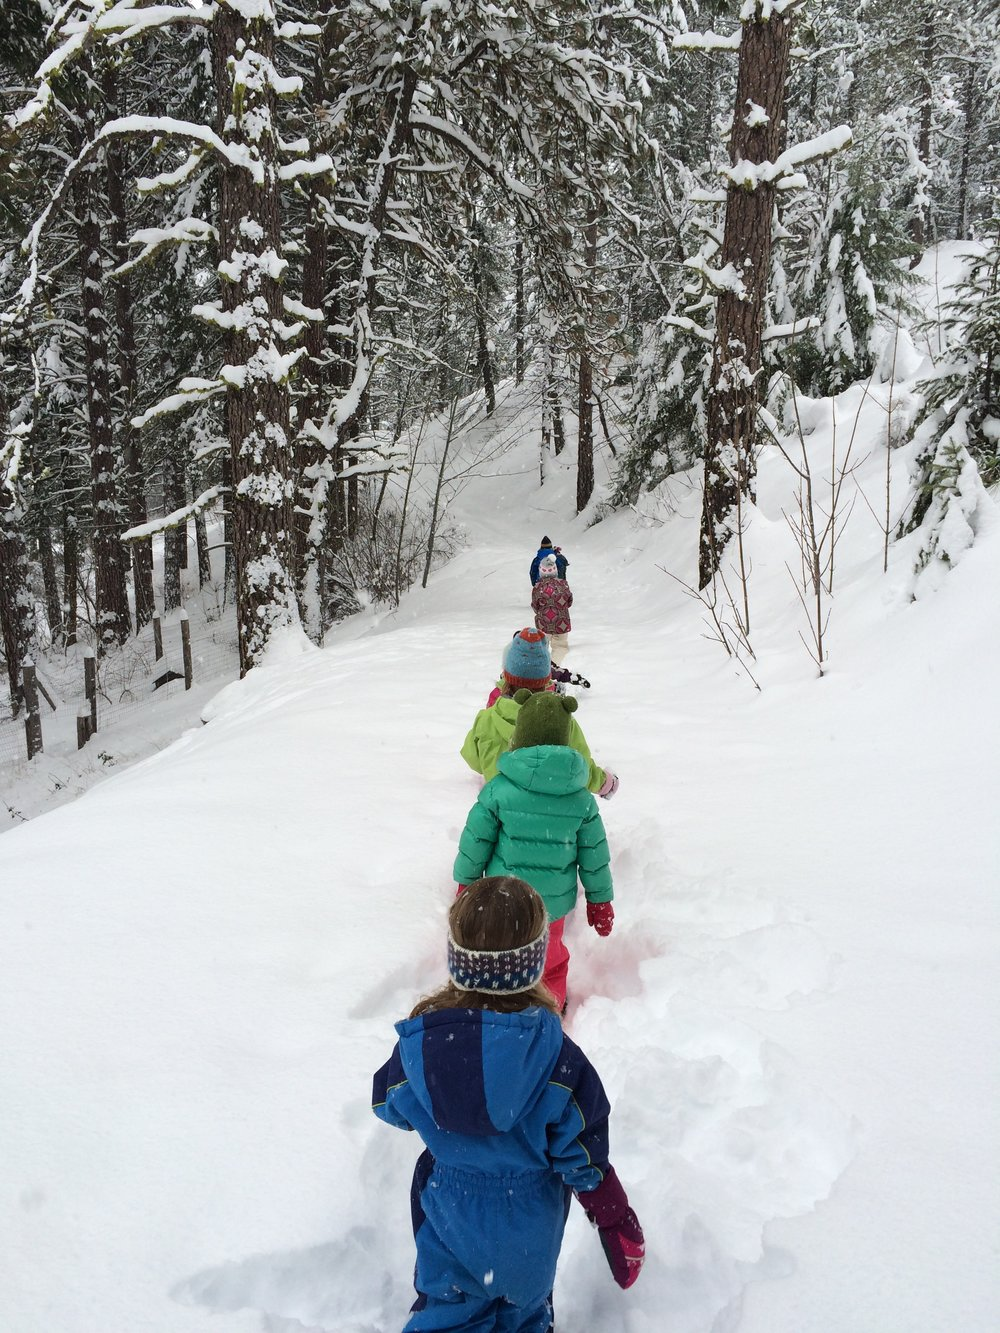 Family Explorers - free - Come learn what nature immersion education is all about by joining our class for free!Sign up online for any day you would like to come to Willow with an adult joining a child in class. Please come 20 minutes early for class.No drop ins, registration required - you may be turned away without registration.